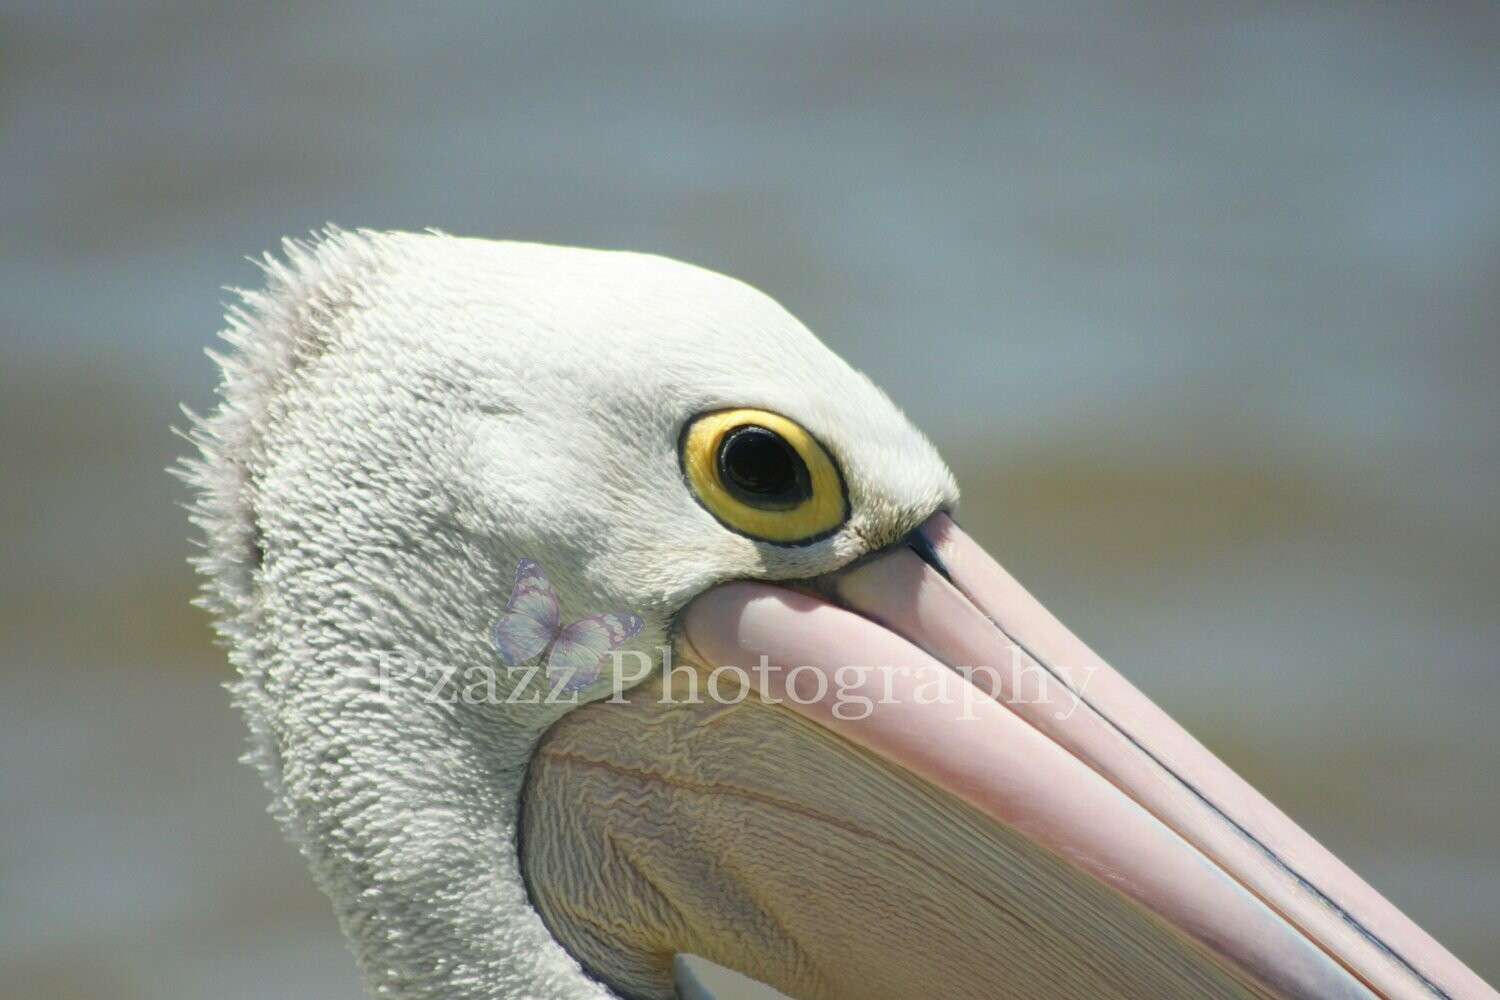 Pzazz Photography - Pelican Closeup - Full Drill Diamond Painting - Specially ordered for you. Delivery is approximately 4 - 6 weeks.